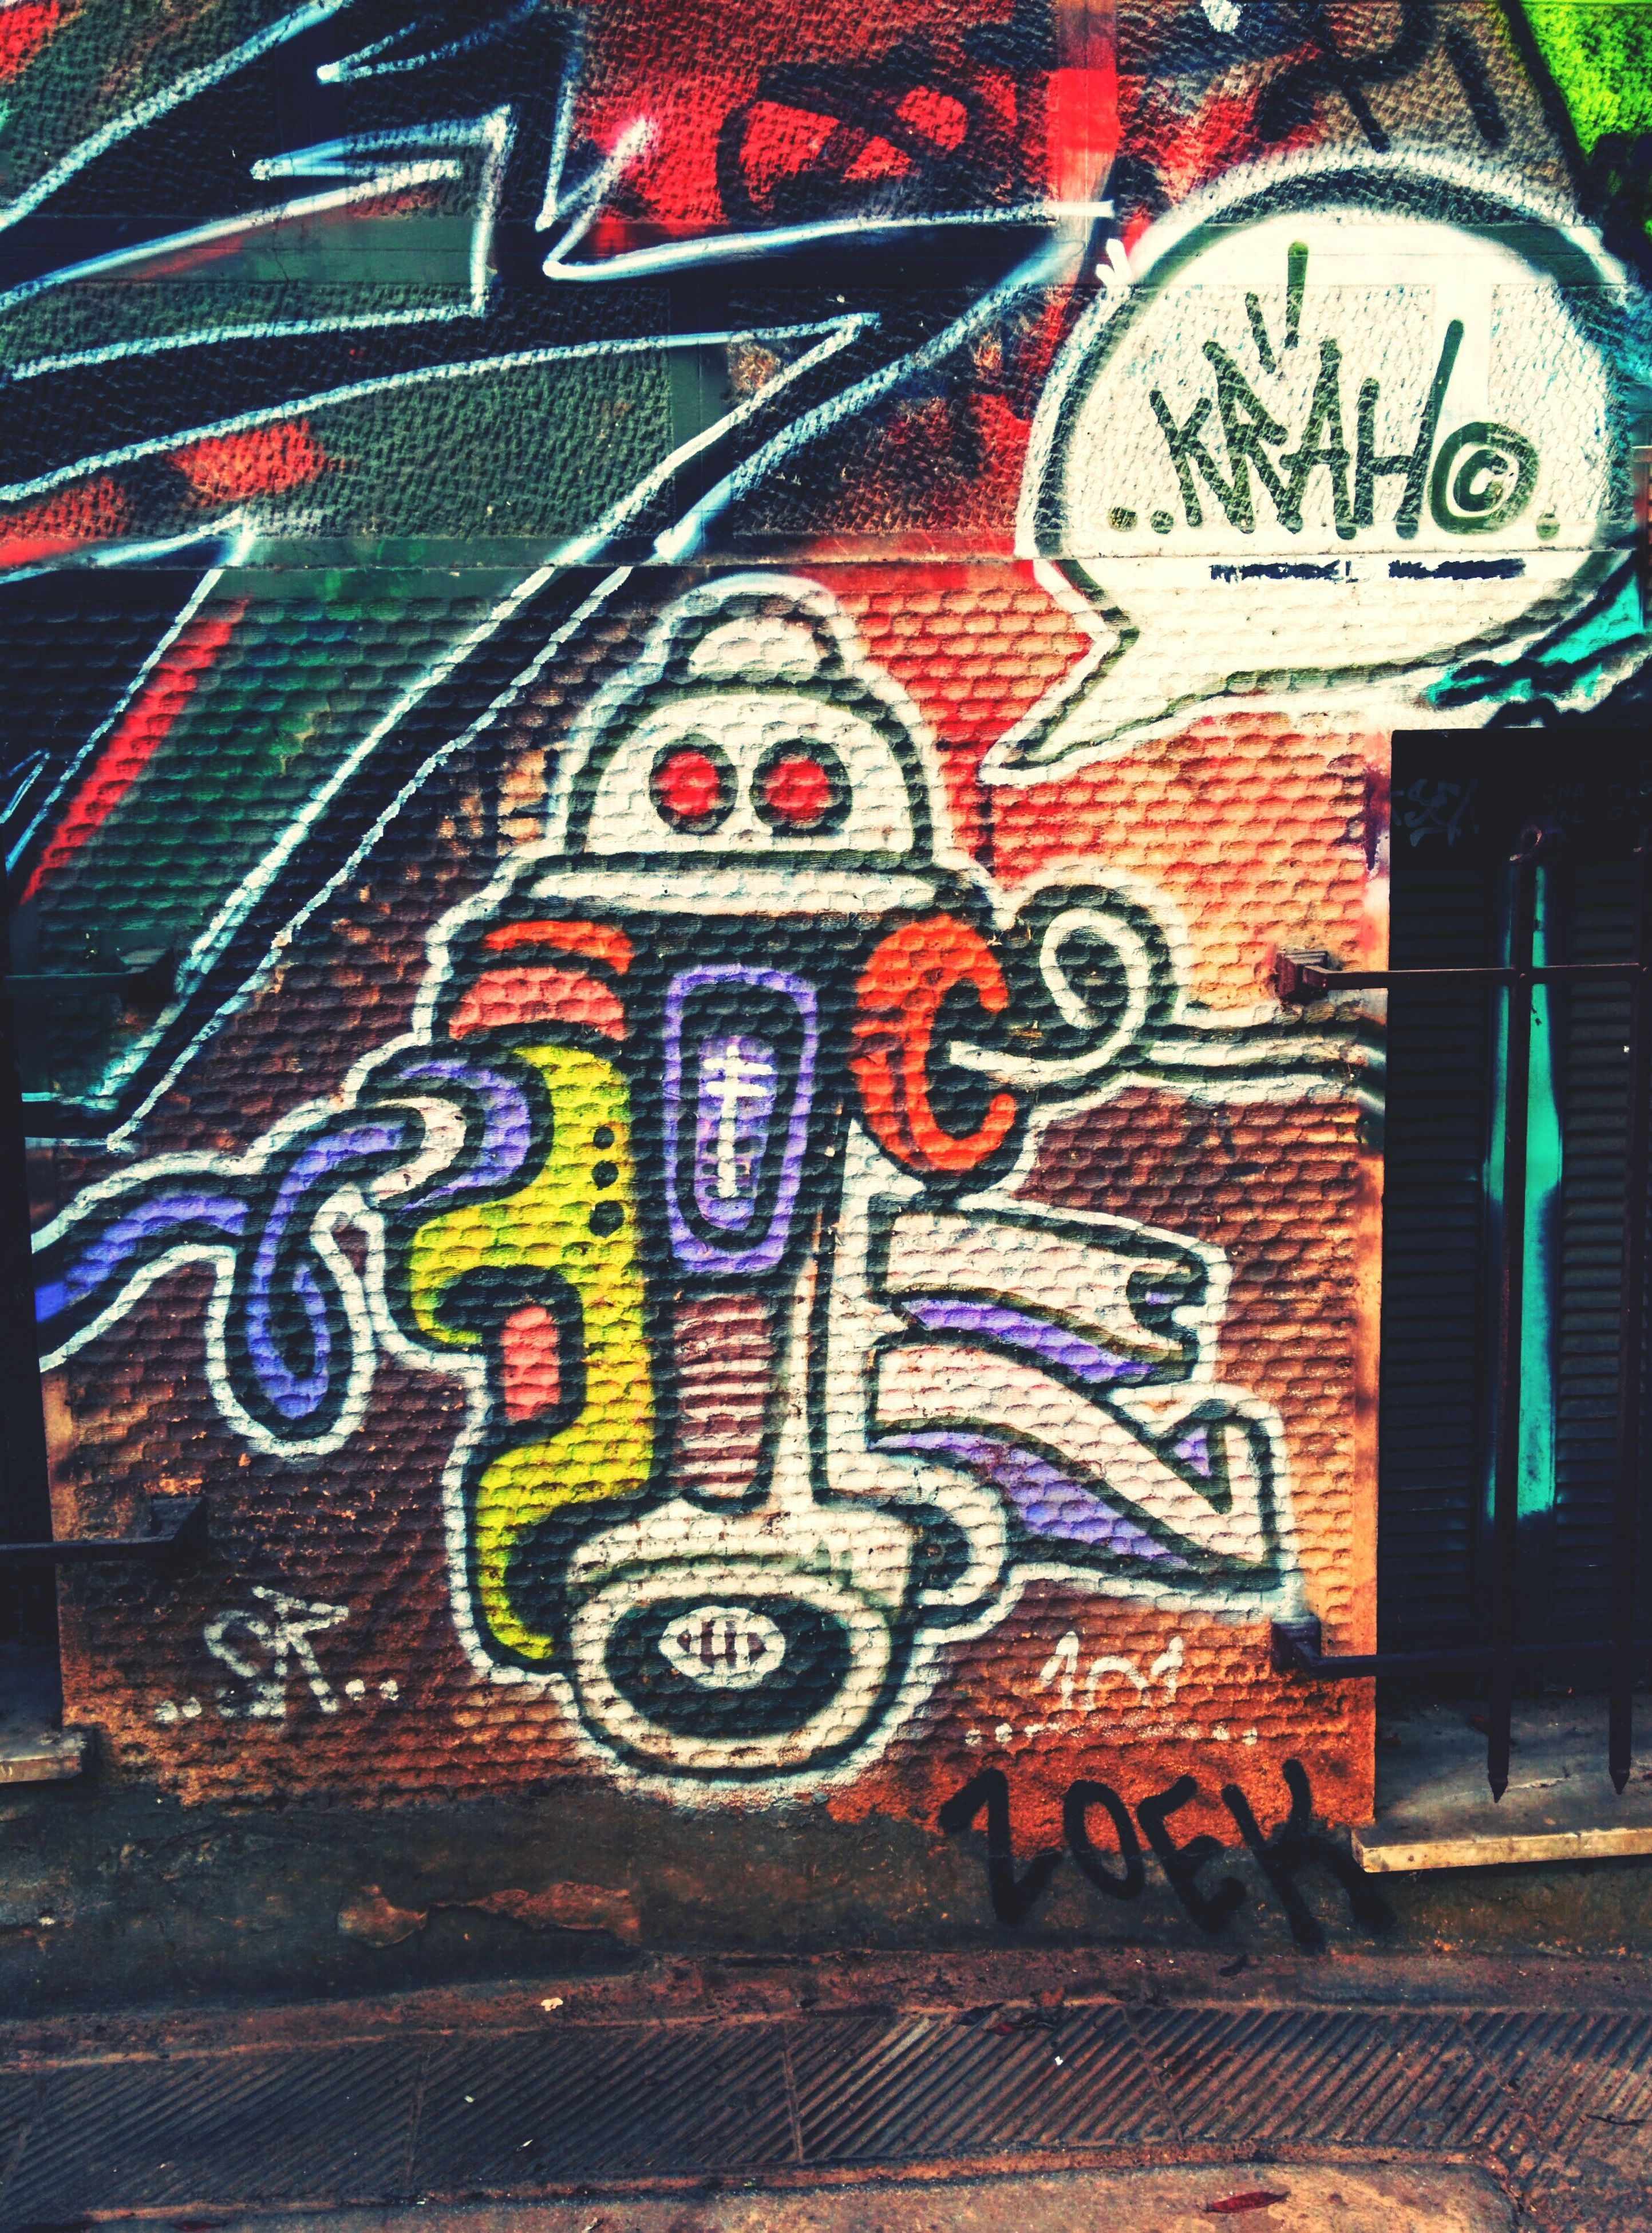 graffiti, art and craft, art, creativity, text, wall - building feature, multi colored, pattern, built structure, architecture, communication, design, western script, brick wall, no people, building exterior, street art, wall, outdoors, close-up